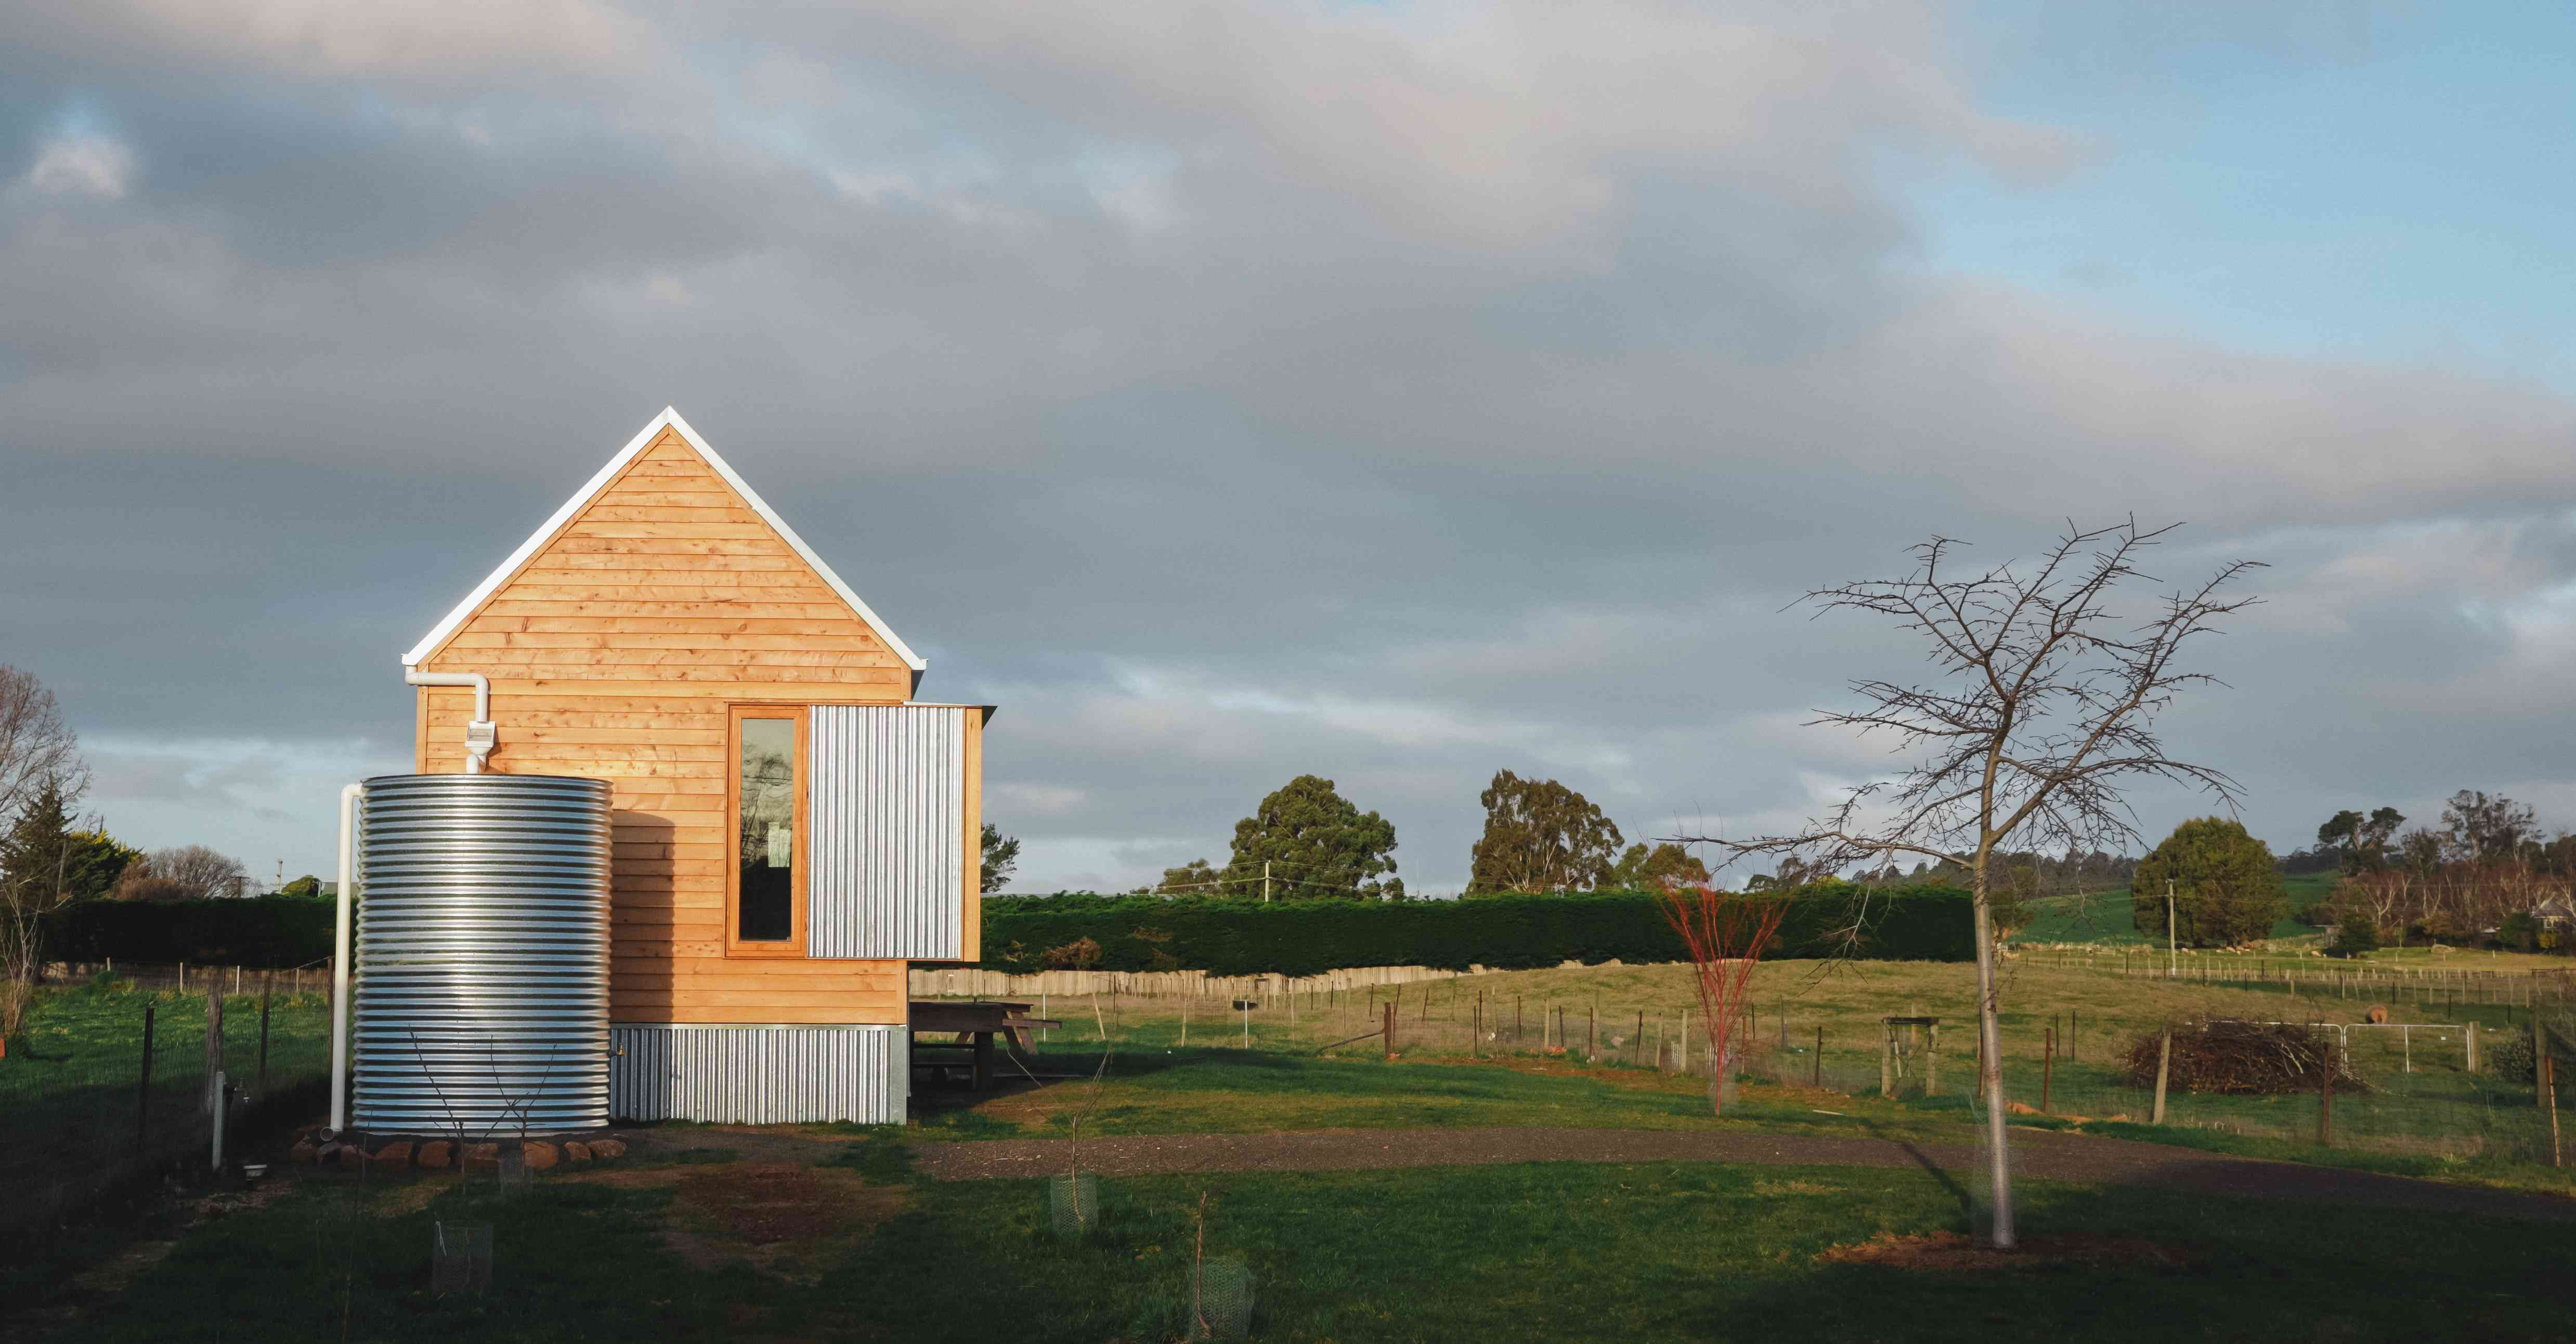 tasmanian house and clouds